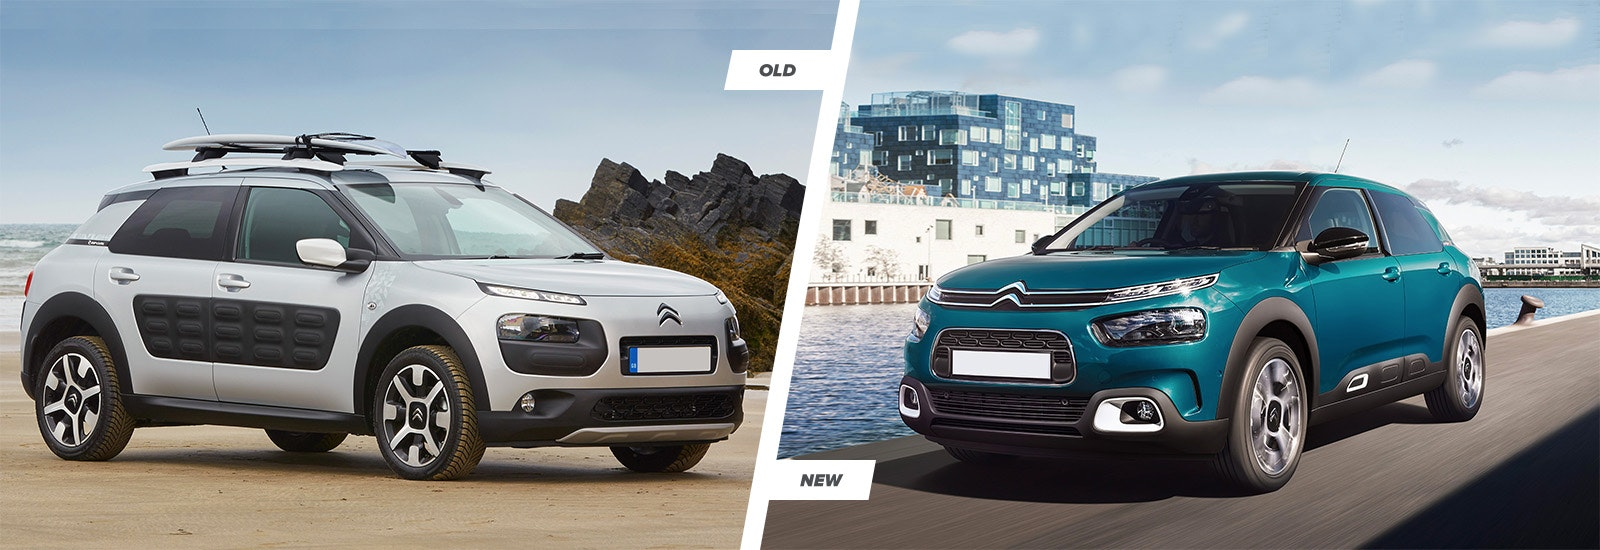 2018 Citroen C4 Cactus Price Specs And Release Date Carwow